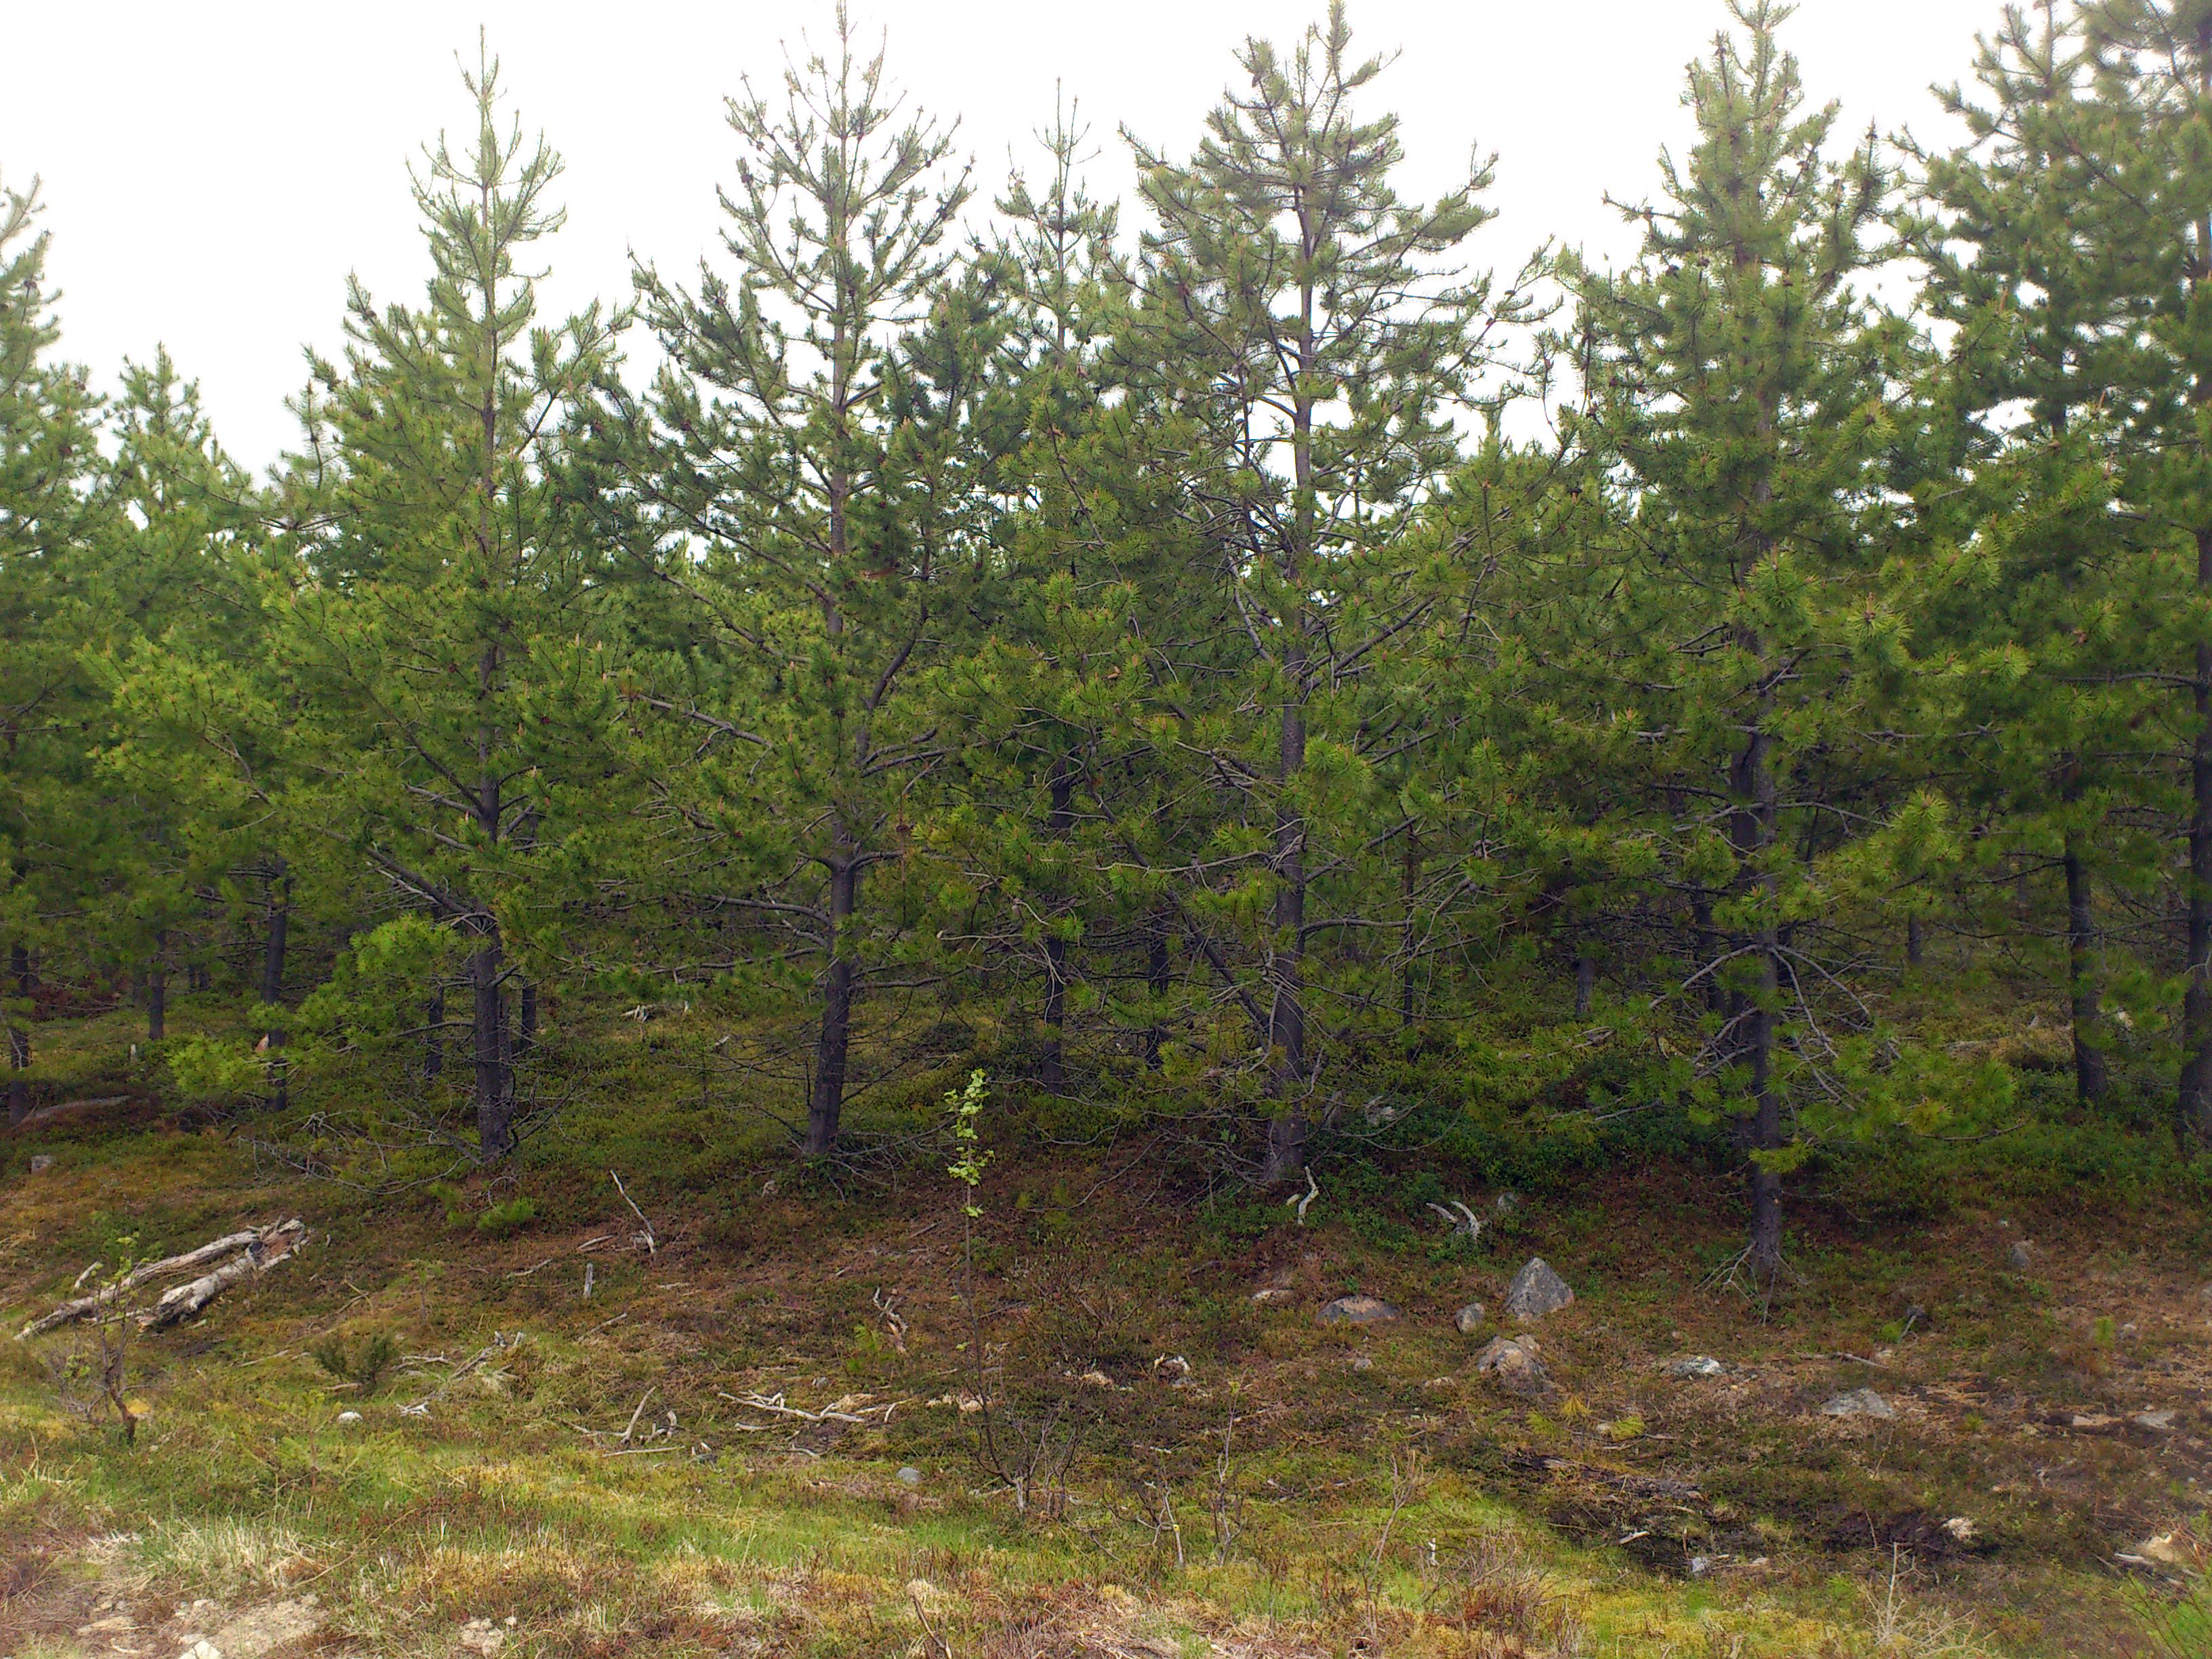 A Pinus contorta plantation in Norrbotten, the northernmost county in Sweden. Photo: Marie-Charlotte Nilsson Hegethorn